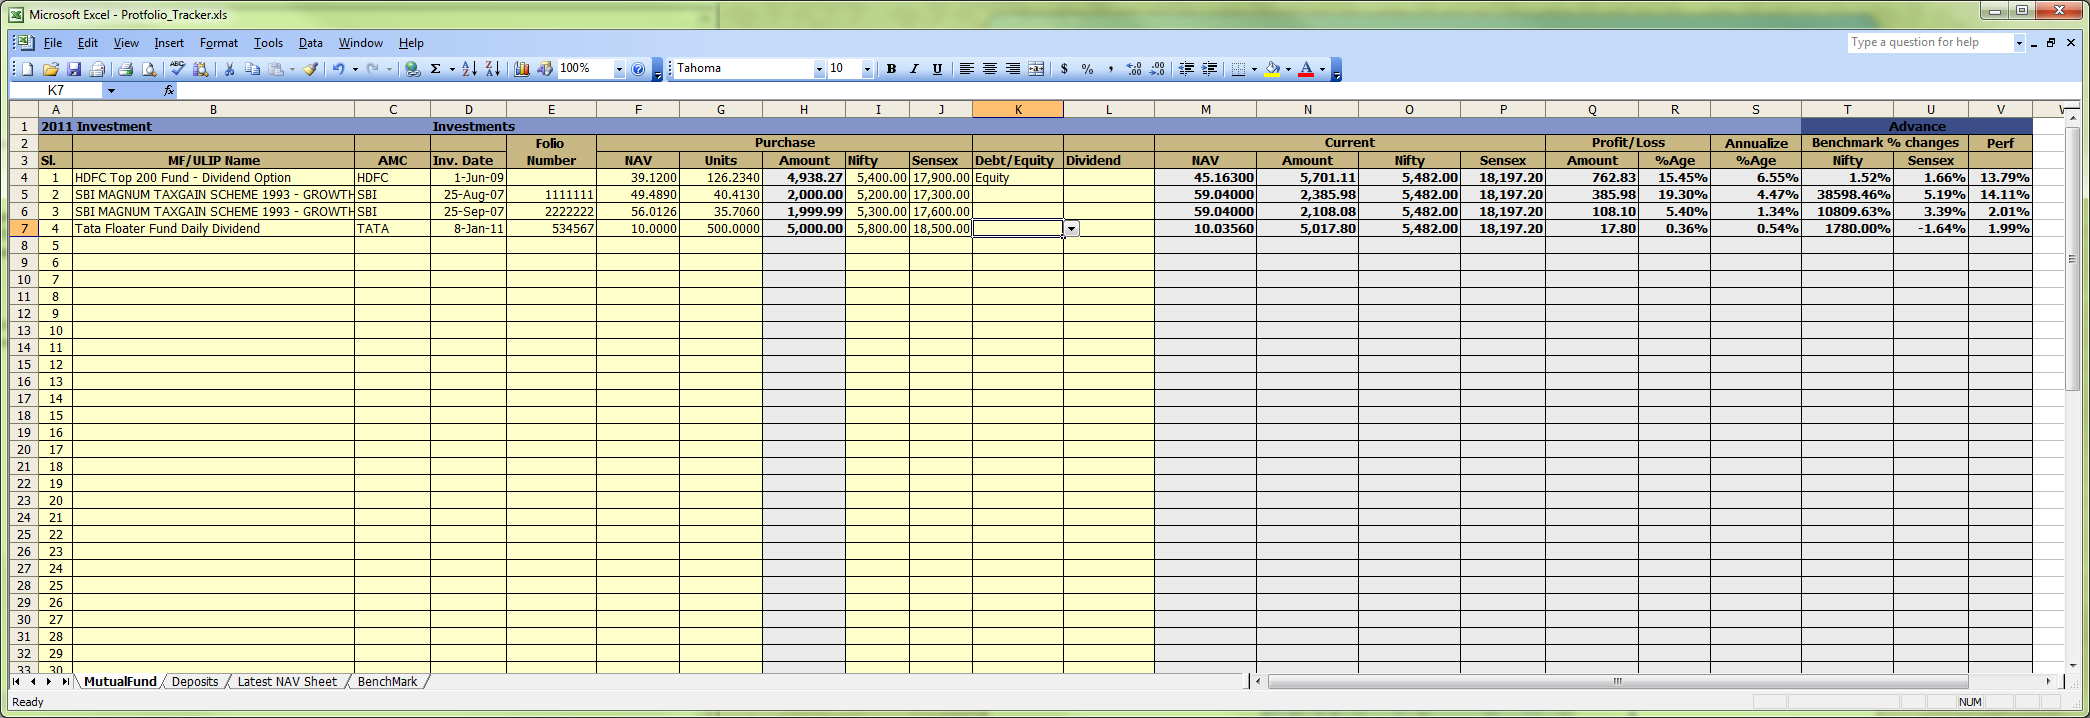 Business Plan Spreadsheet Template Excel With Expense Tracking Inside Inventory Tracking Sheet Template